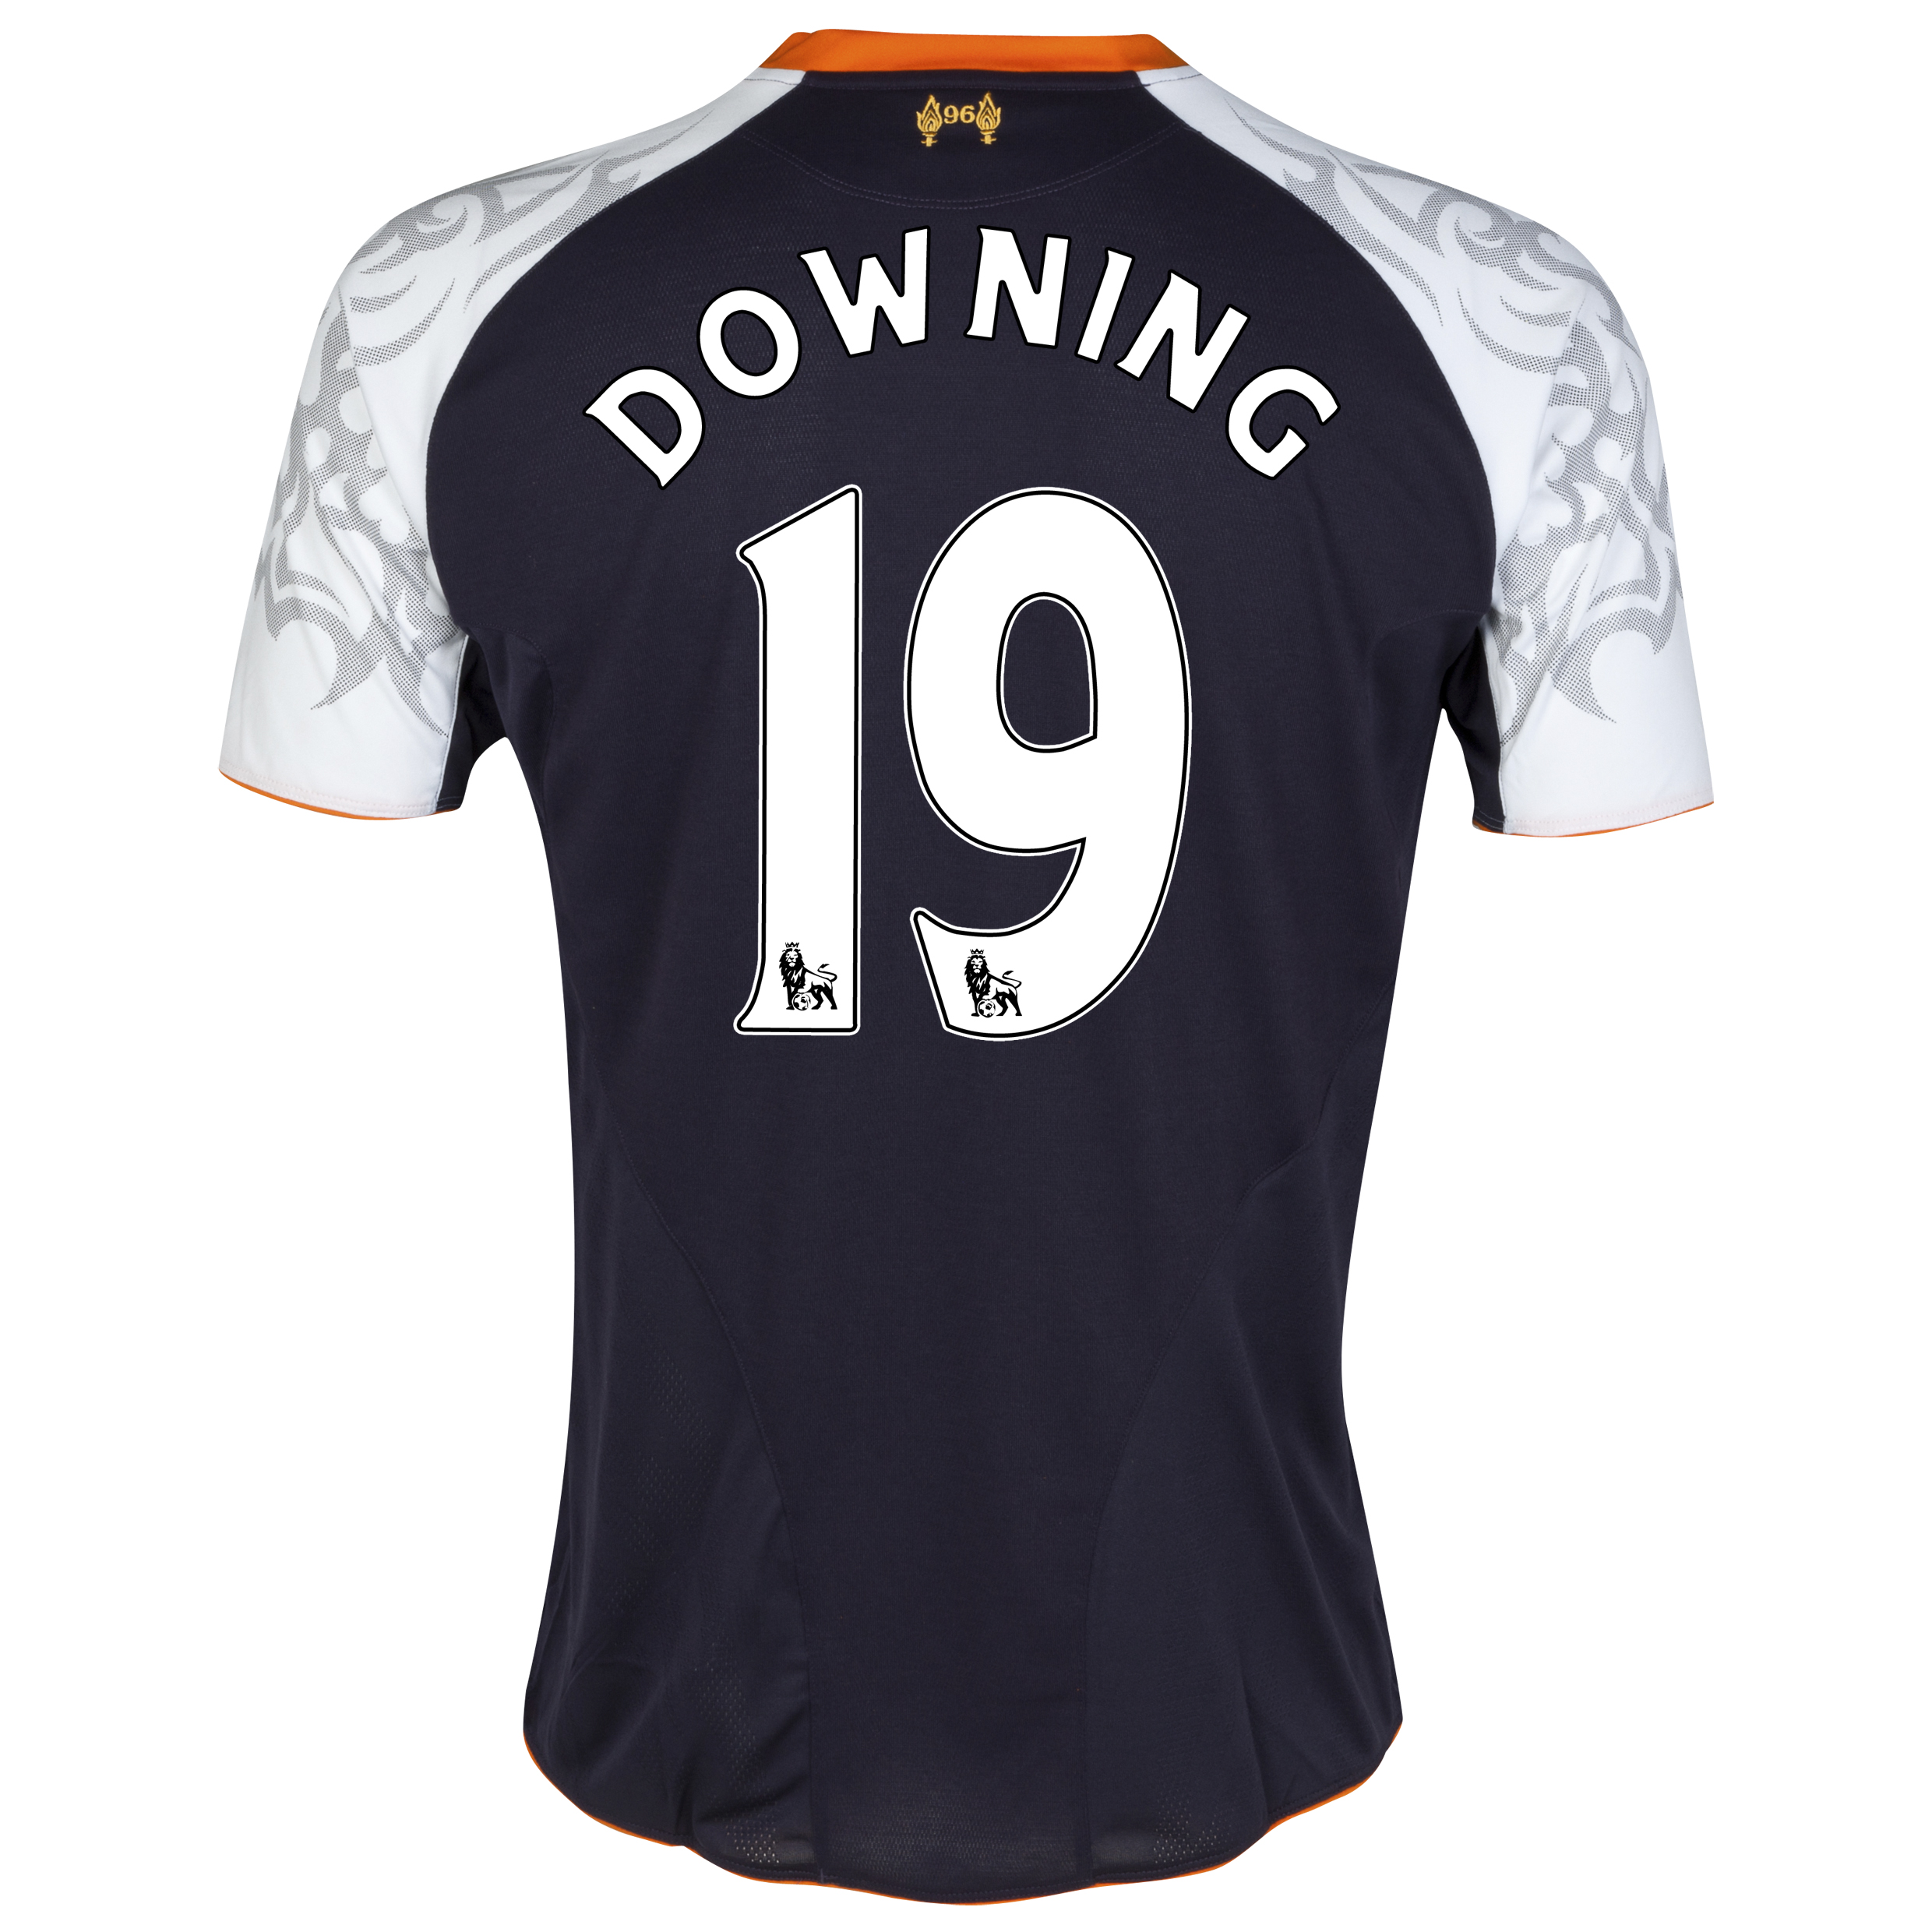 Liverpool Third Shirt 2012/13 - Youths with Downing 19 printing